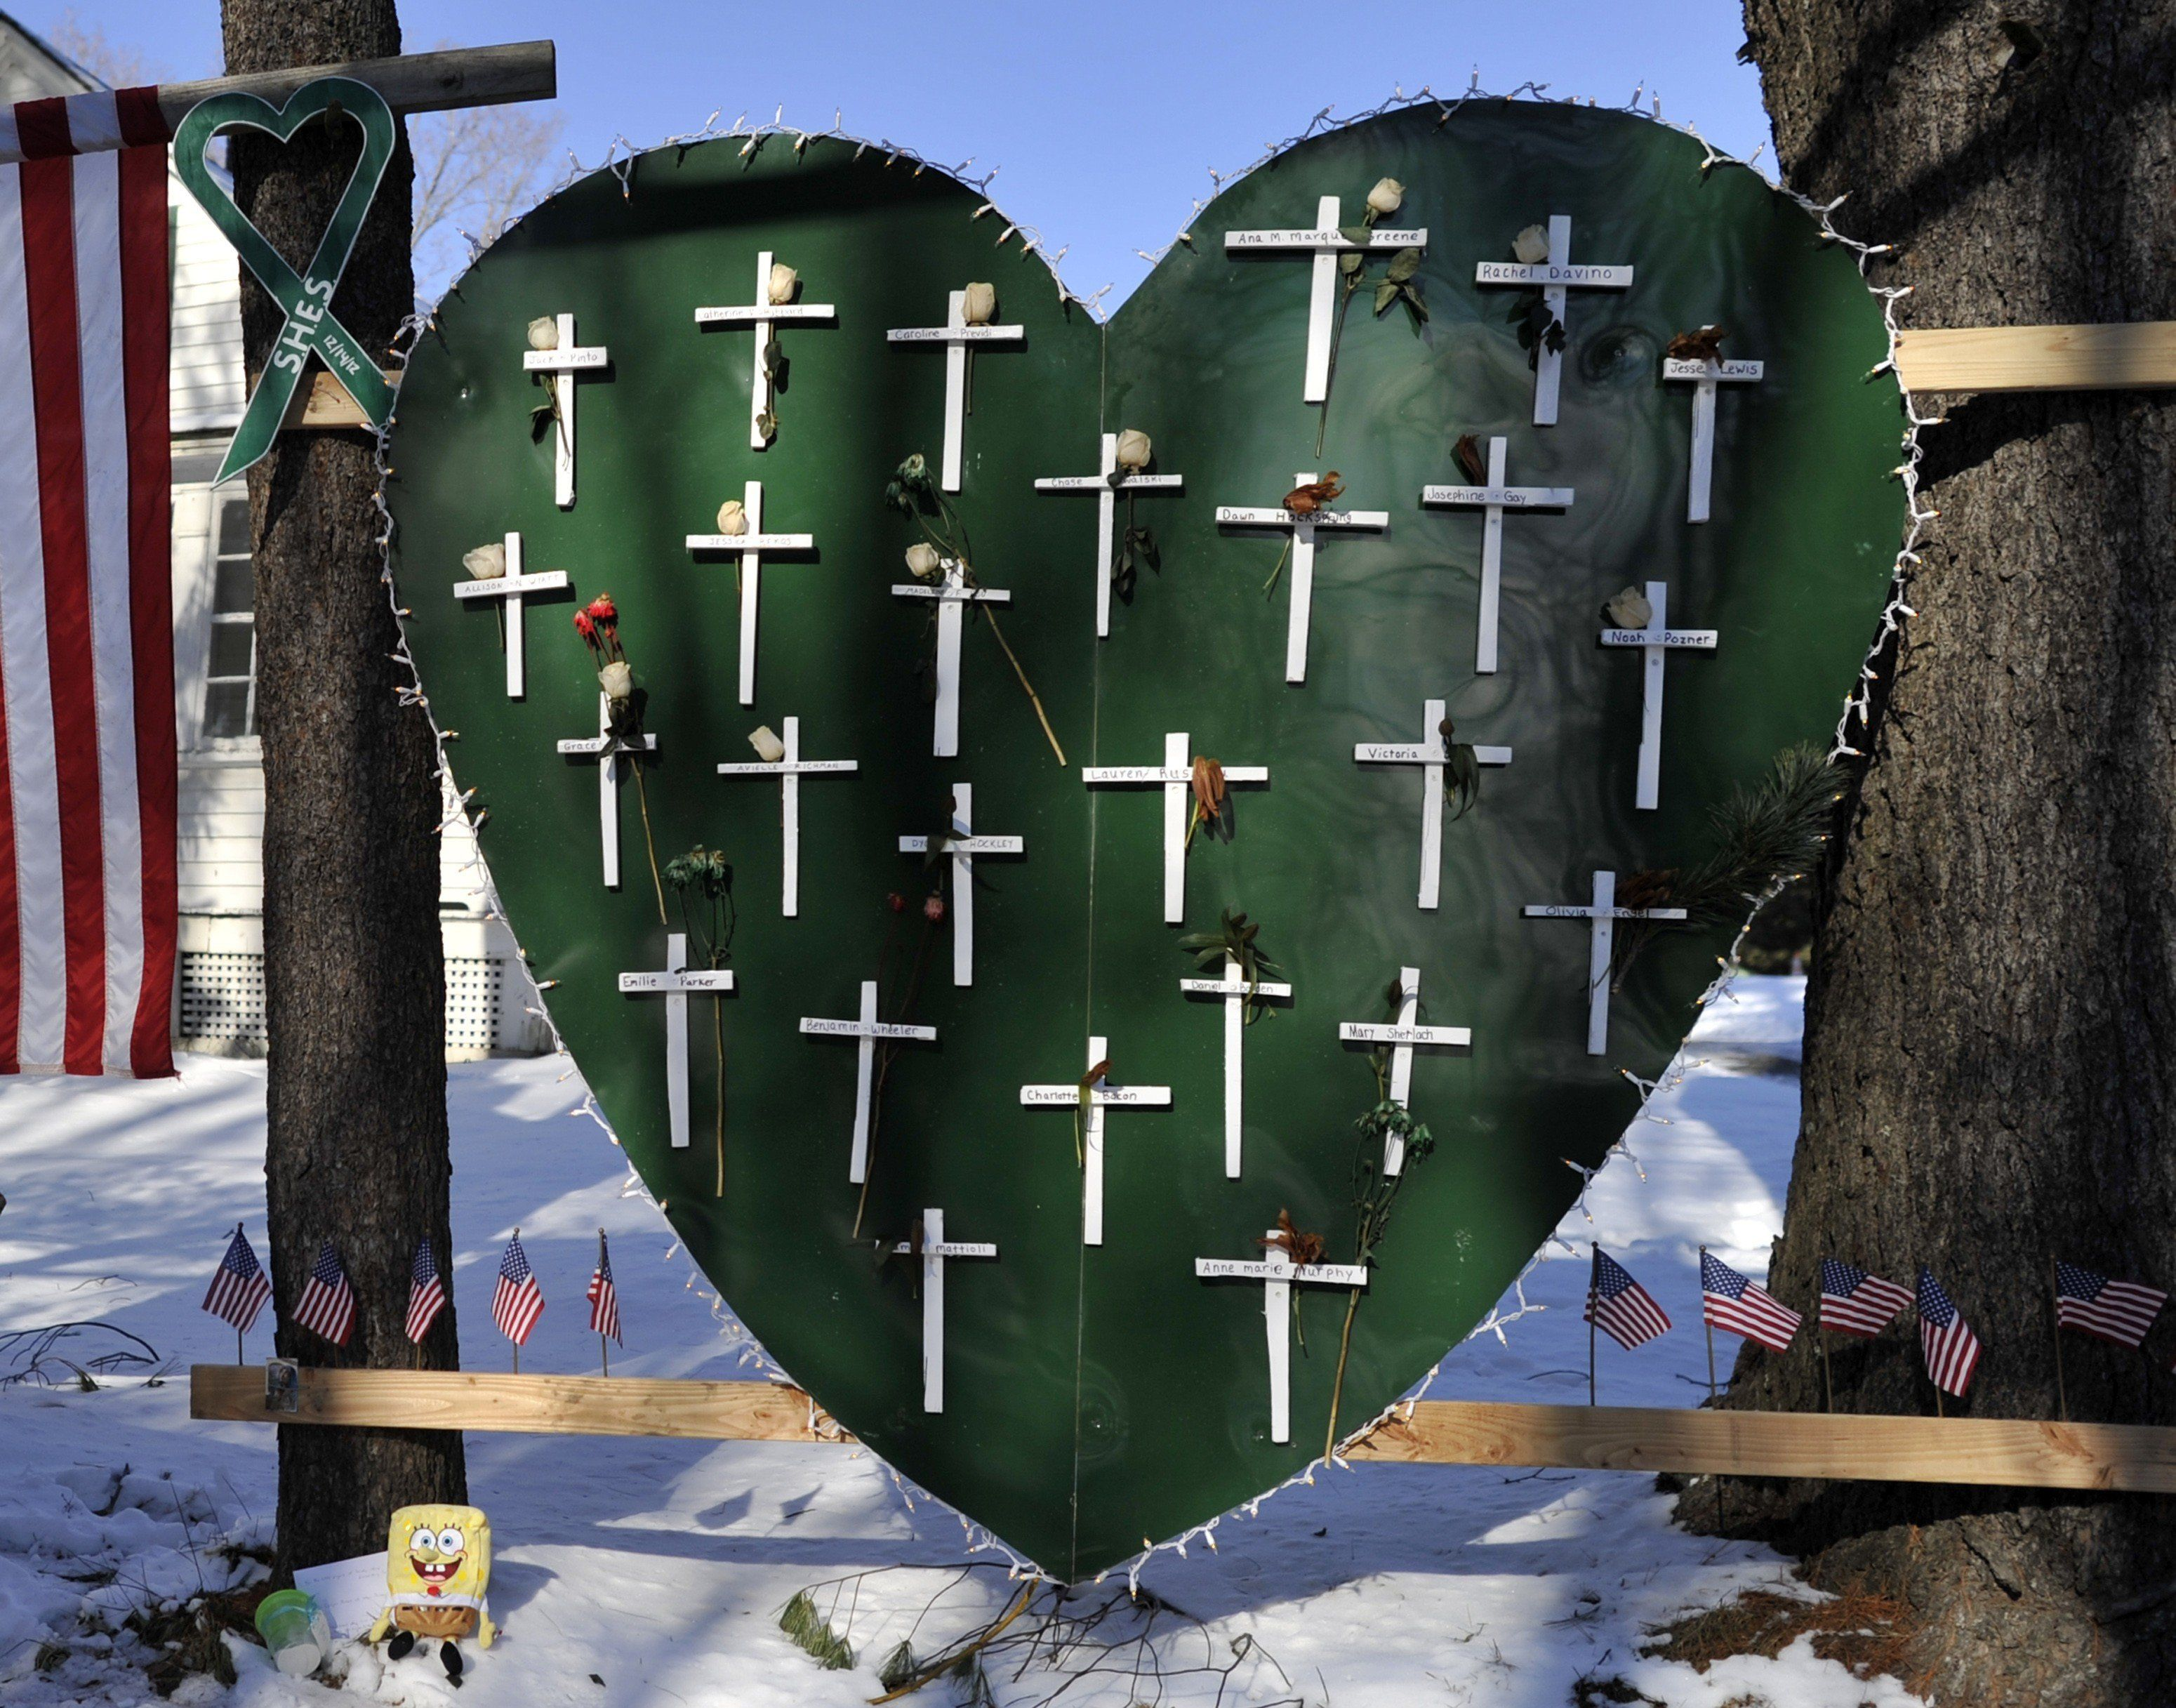 Some of the remaining memorial items to  Sandy Hook Elementry students and staff who died are viewed in Newtown, Connecticut on January 3, 2013.  Students at the elementary school where a gunman massacred 26 children and teachers last month were returning Thursday to classes at an alternative campus described by police as 'the safest school in America.' Survivors were finally to start their new academic year in the nearby town of Monroe, where a disused middle school has been converted and renamed from its original Chalk Hill to Sandy Hook. AFP PHOTO / TIMOTHY A. CLARY / AFP / TIMOTHY A. CLARY        (Photo credit should read TIMOTHY A. CLARY/AFP/Getty Images)